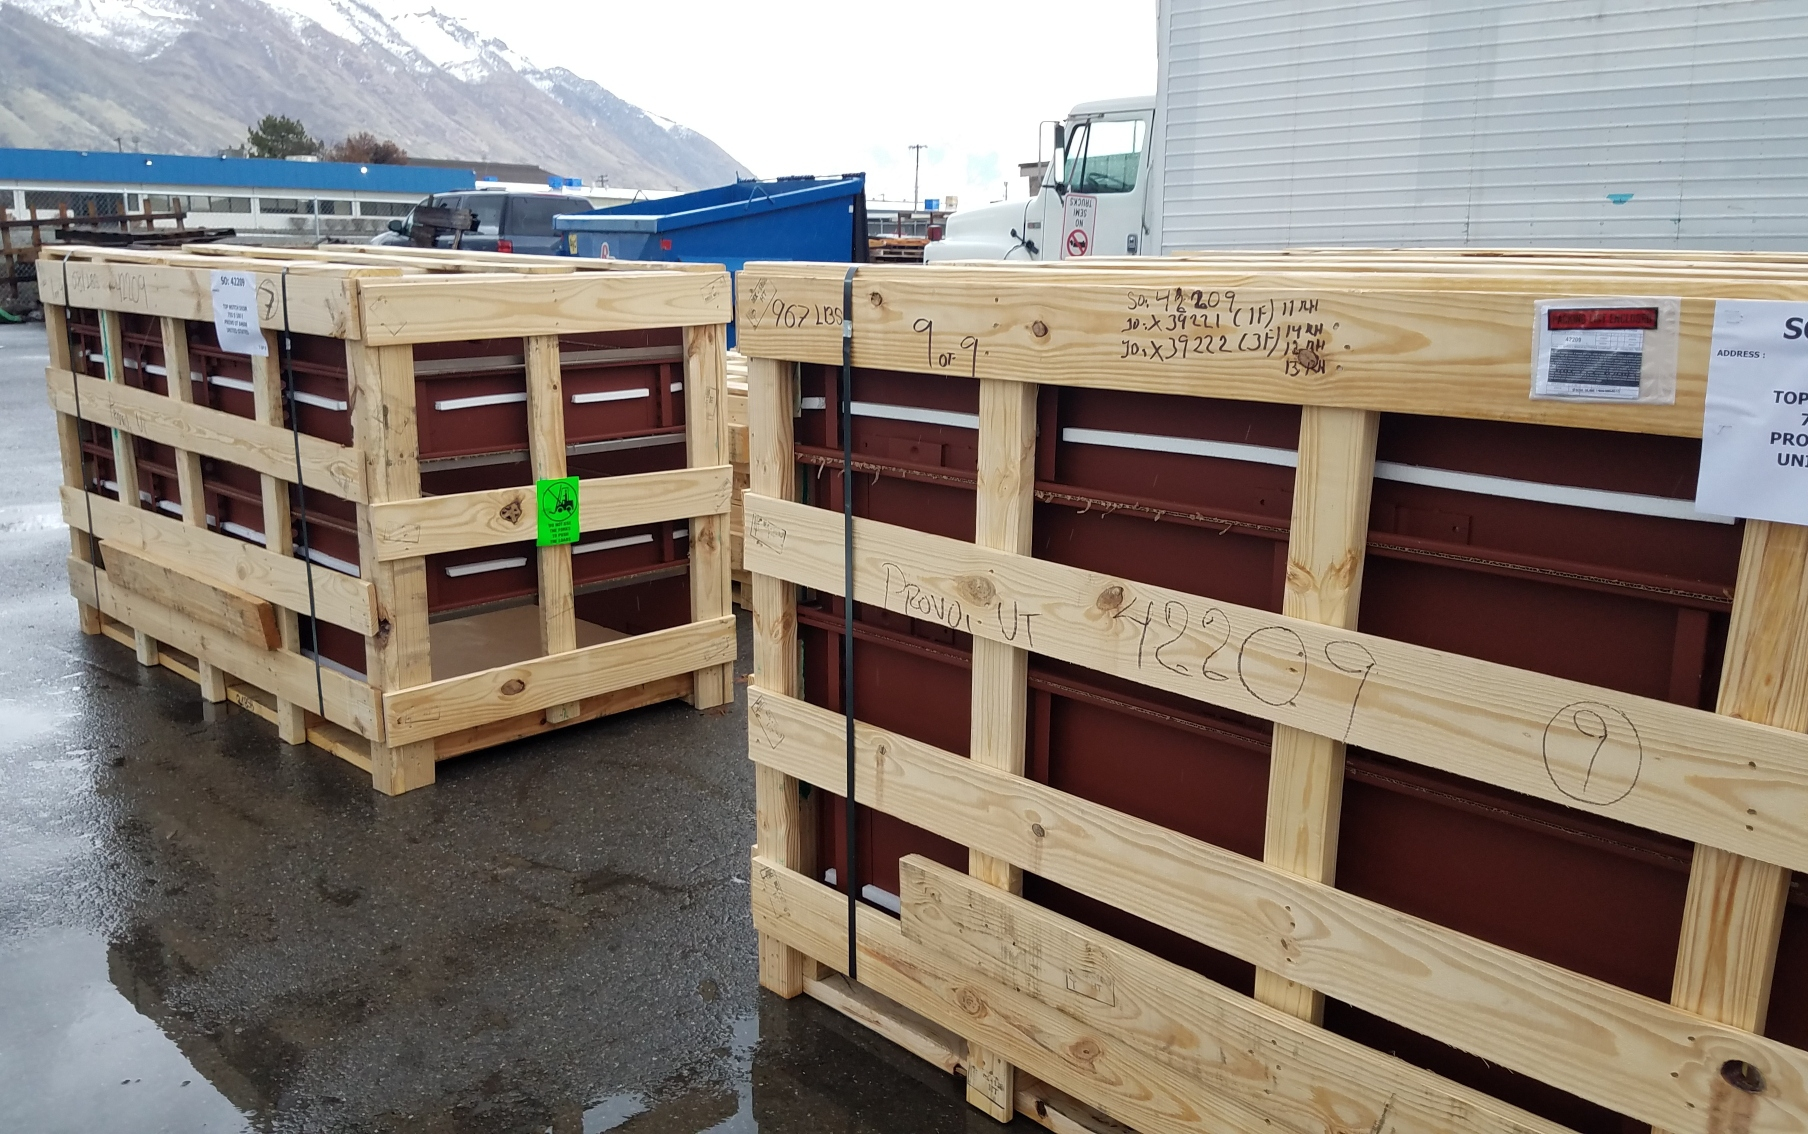 9 huge crates showed up with the Overly acoustic doors. The frames will be installed starting this week.